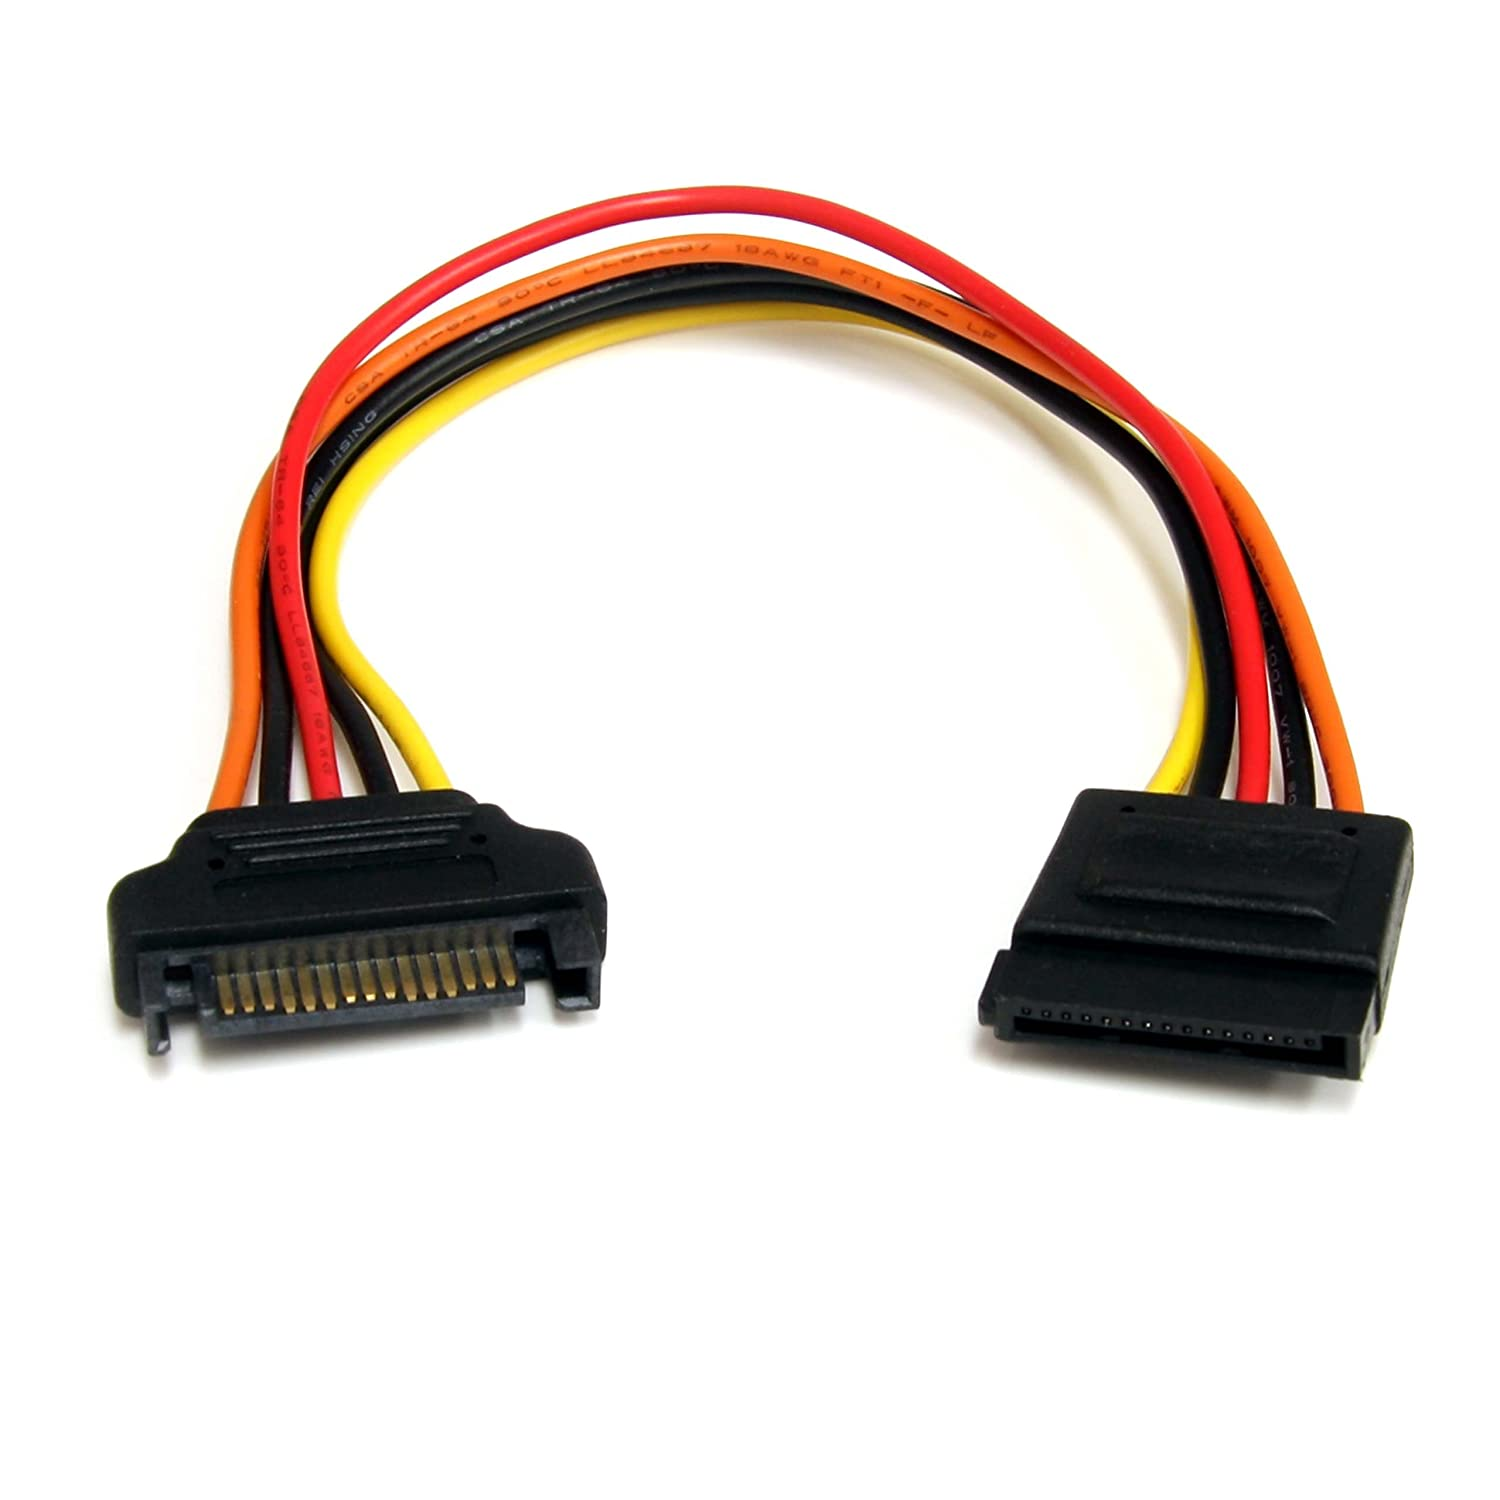 StarTech.com 8in 15 pin SATA Power Extension Cable - 8 SATA power Extension Cable - 8 SATA power Extension cord SATAPOWEXT8